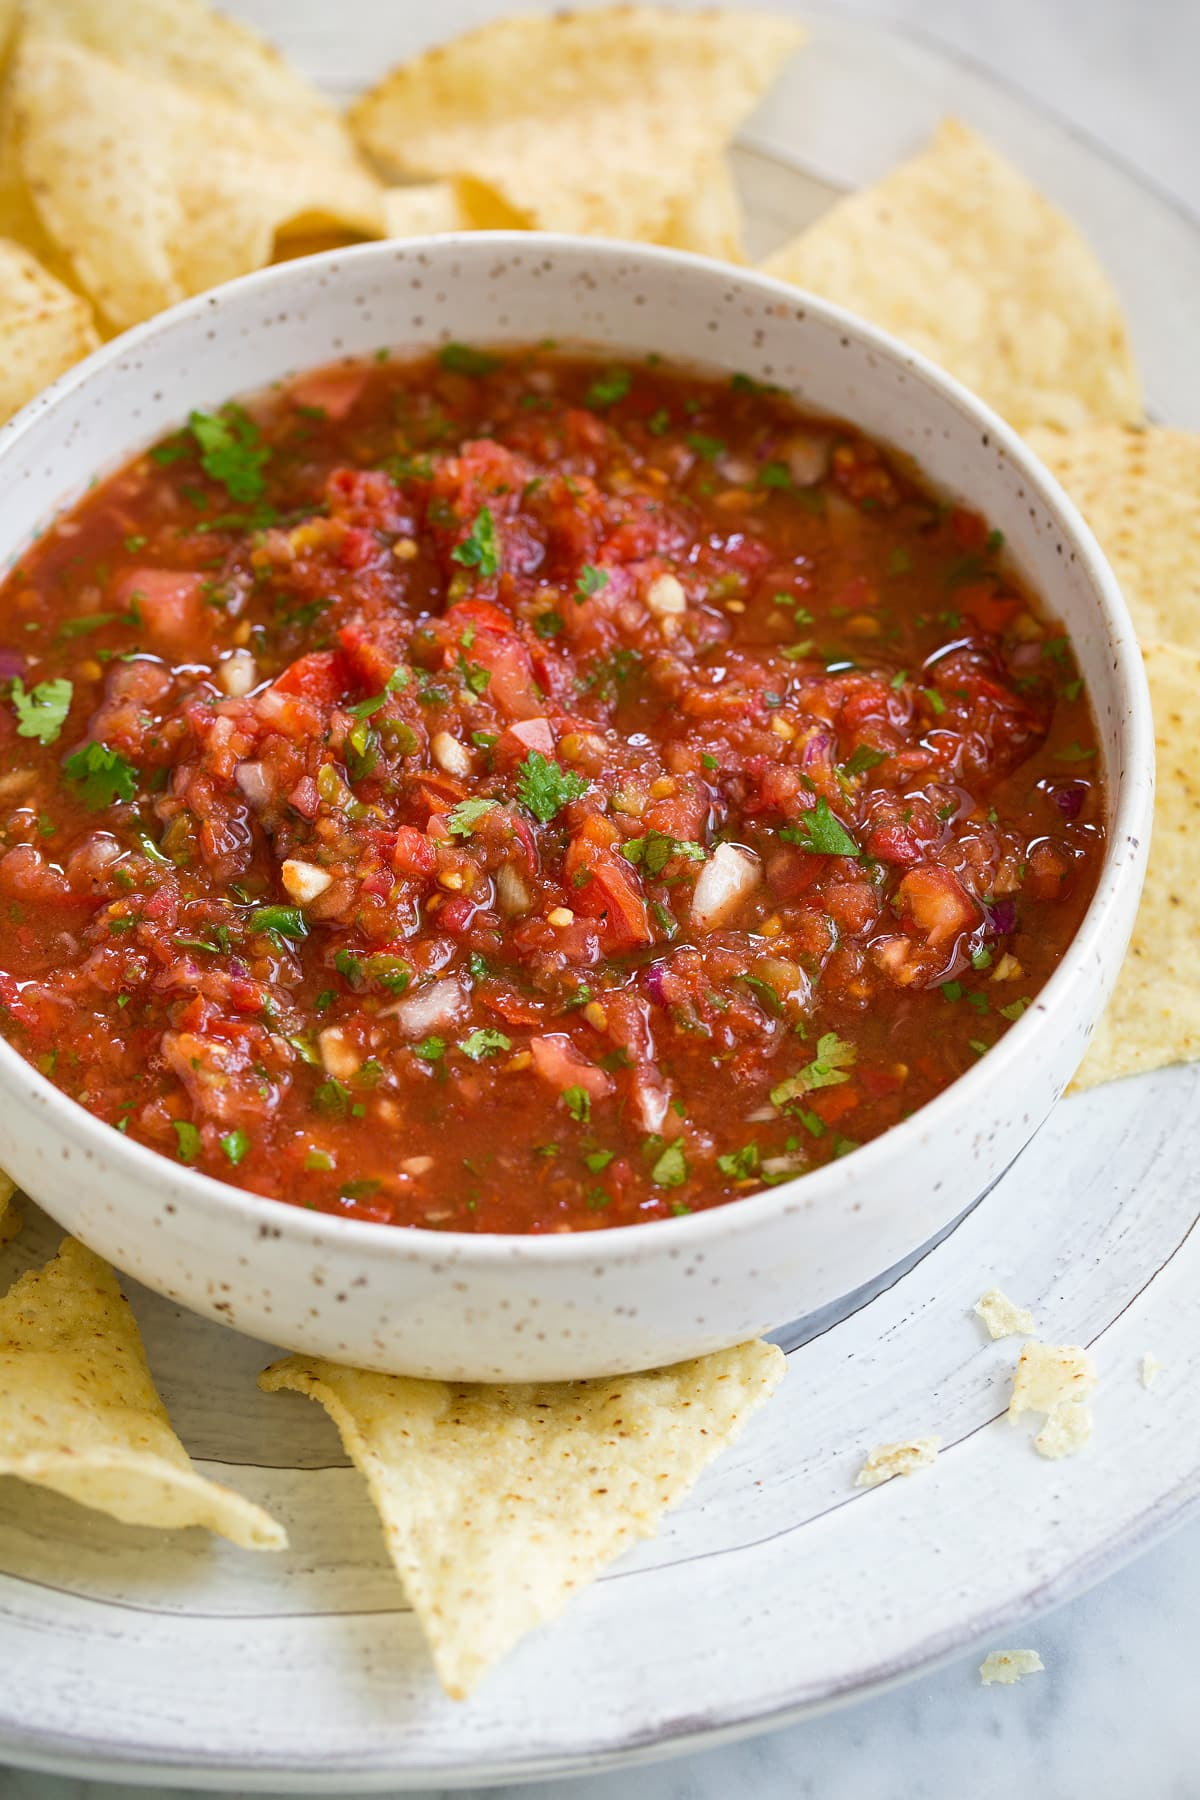 Homemade Chips and Salsa Recipe